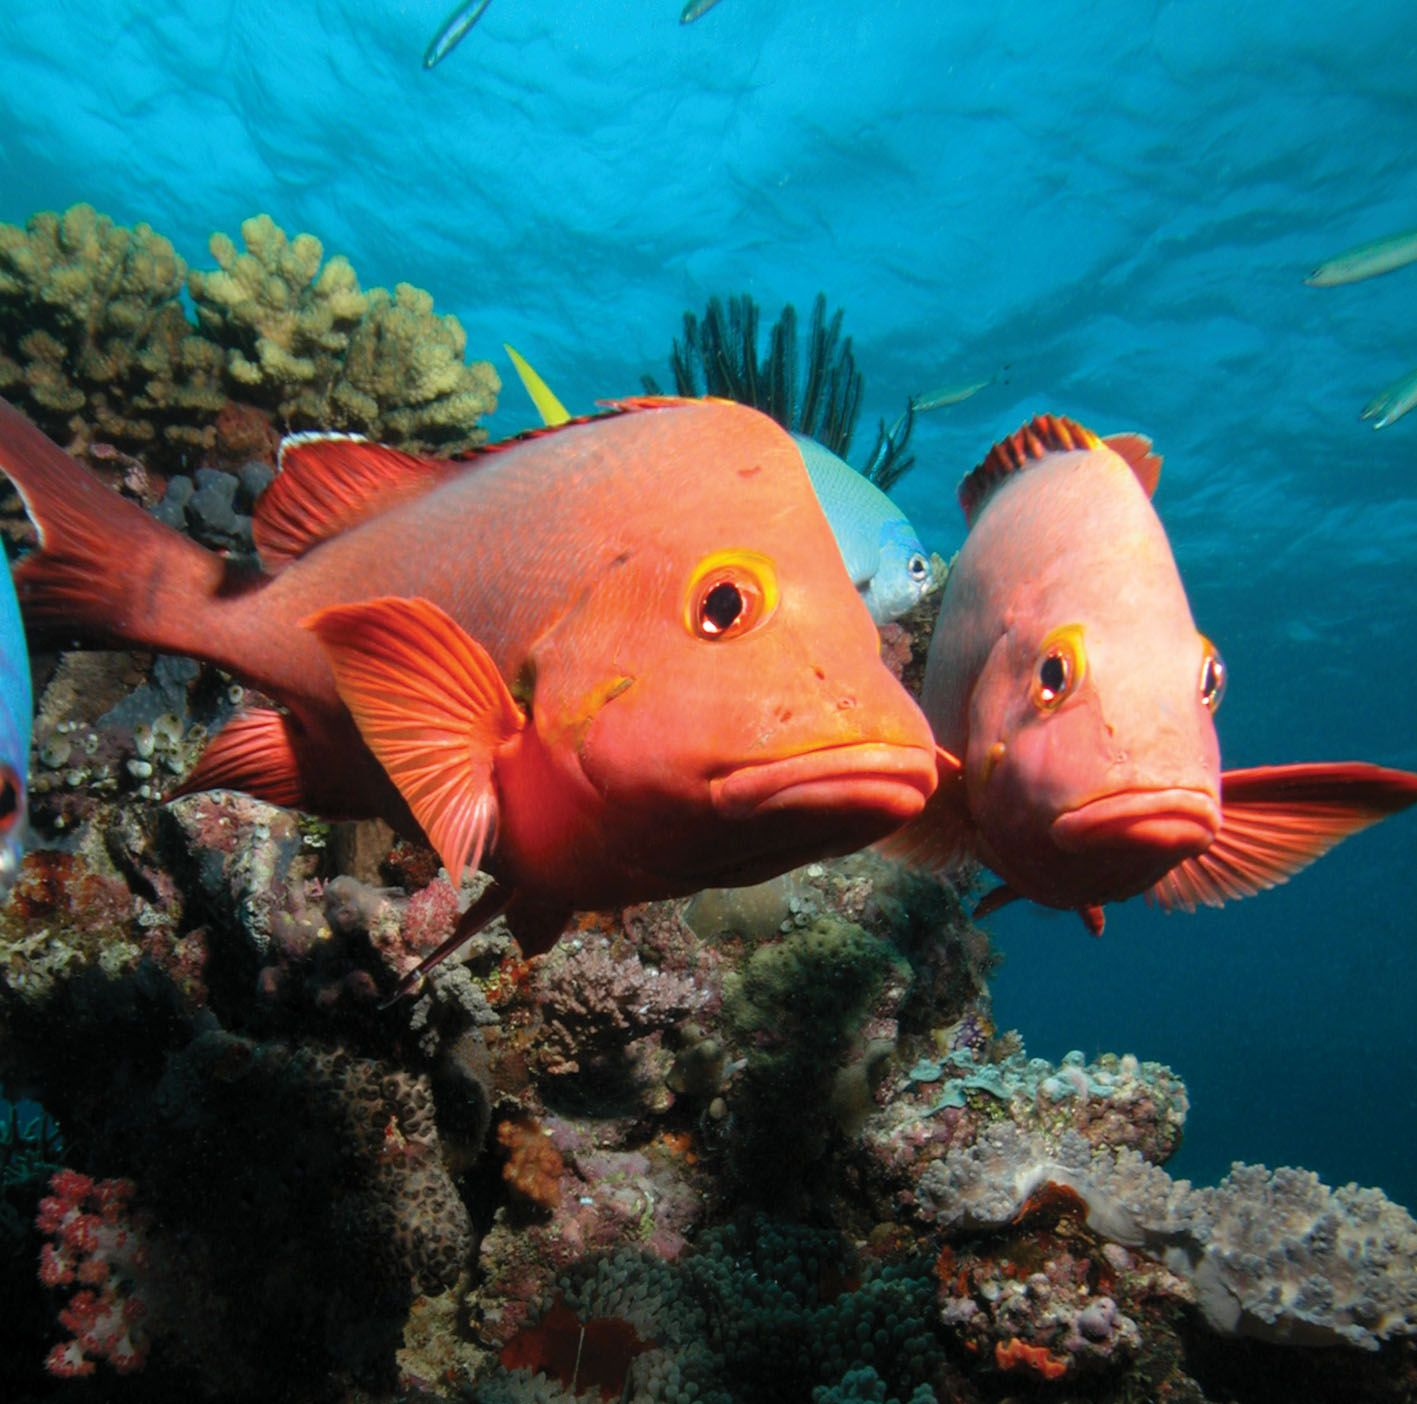 Two-tropical-Red-Fish-at-Coral-Reefs.jpg 1.417×1.404 piksel